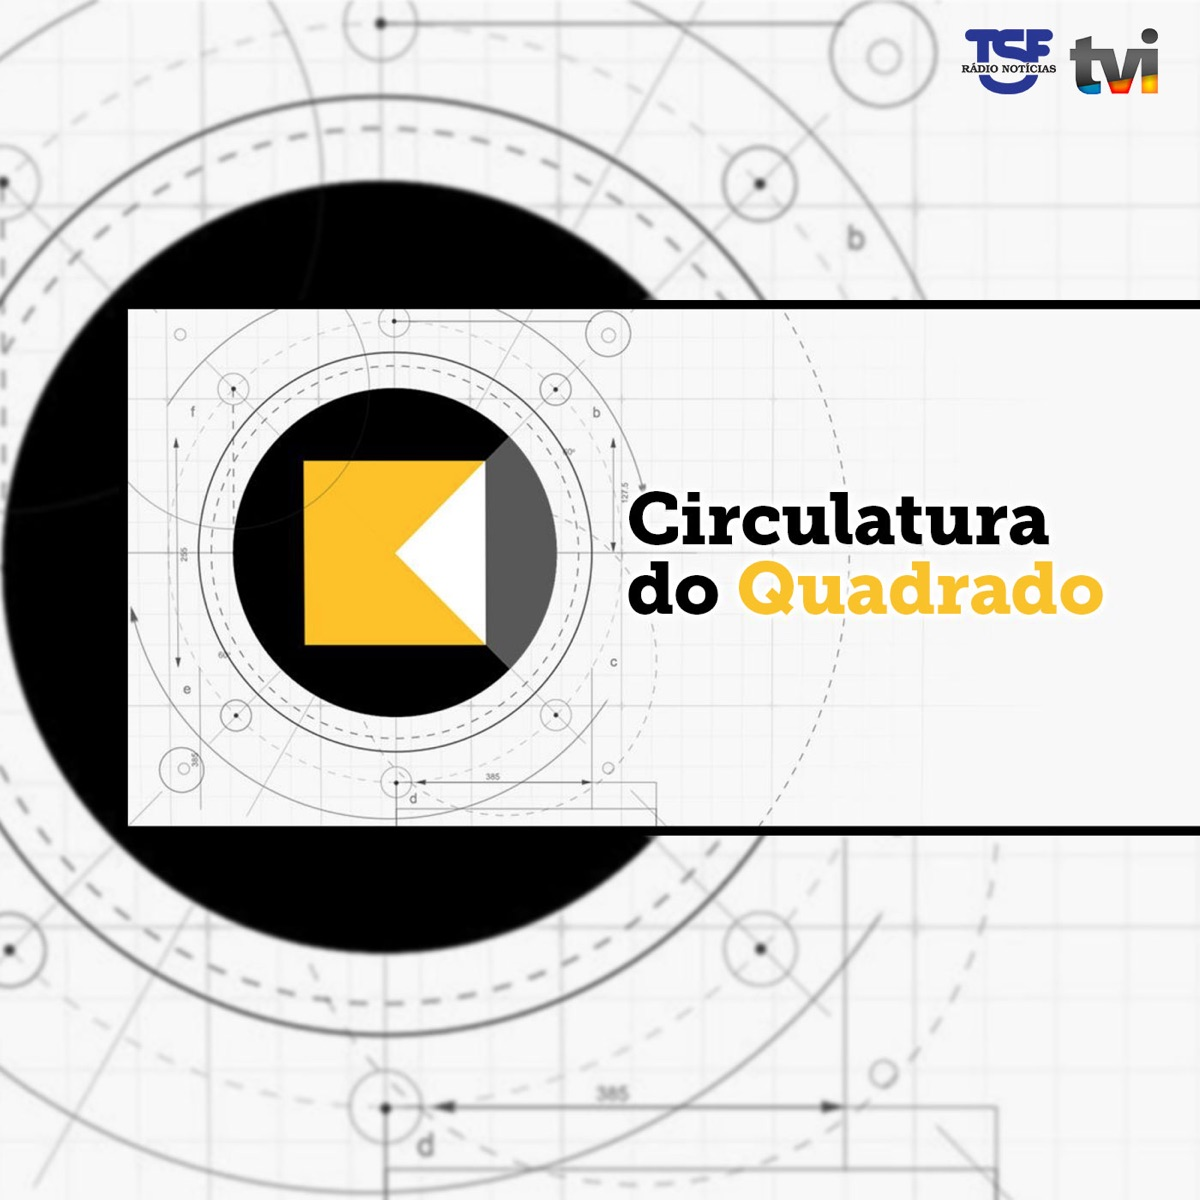 Circulatura do Quadrado - 13 de Maio 2020